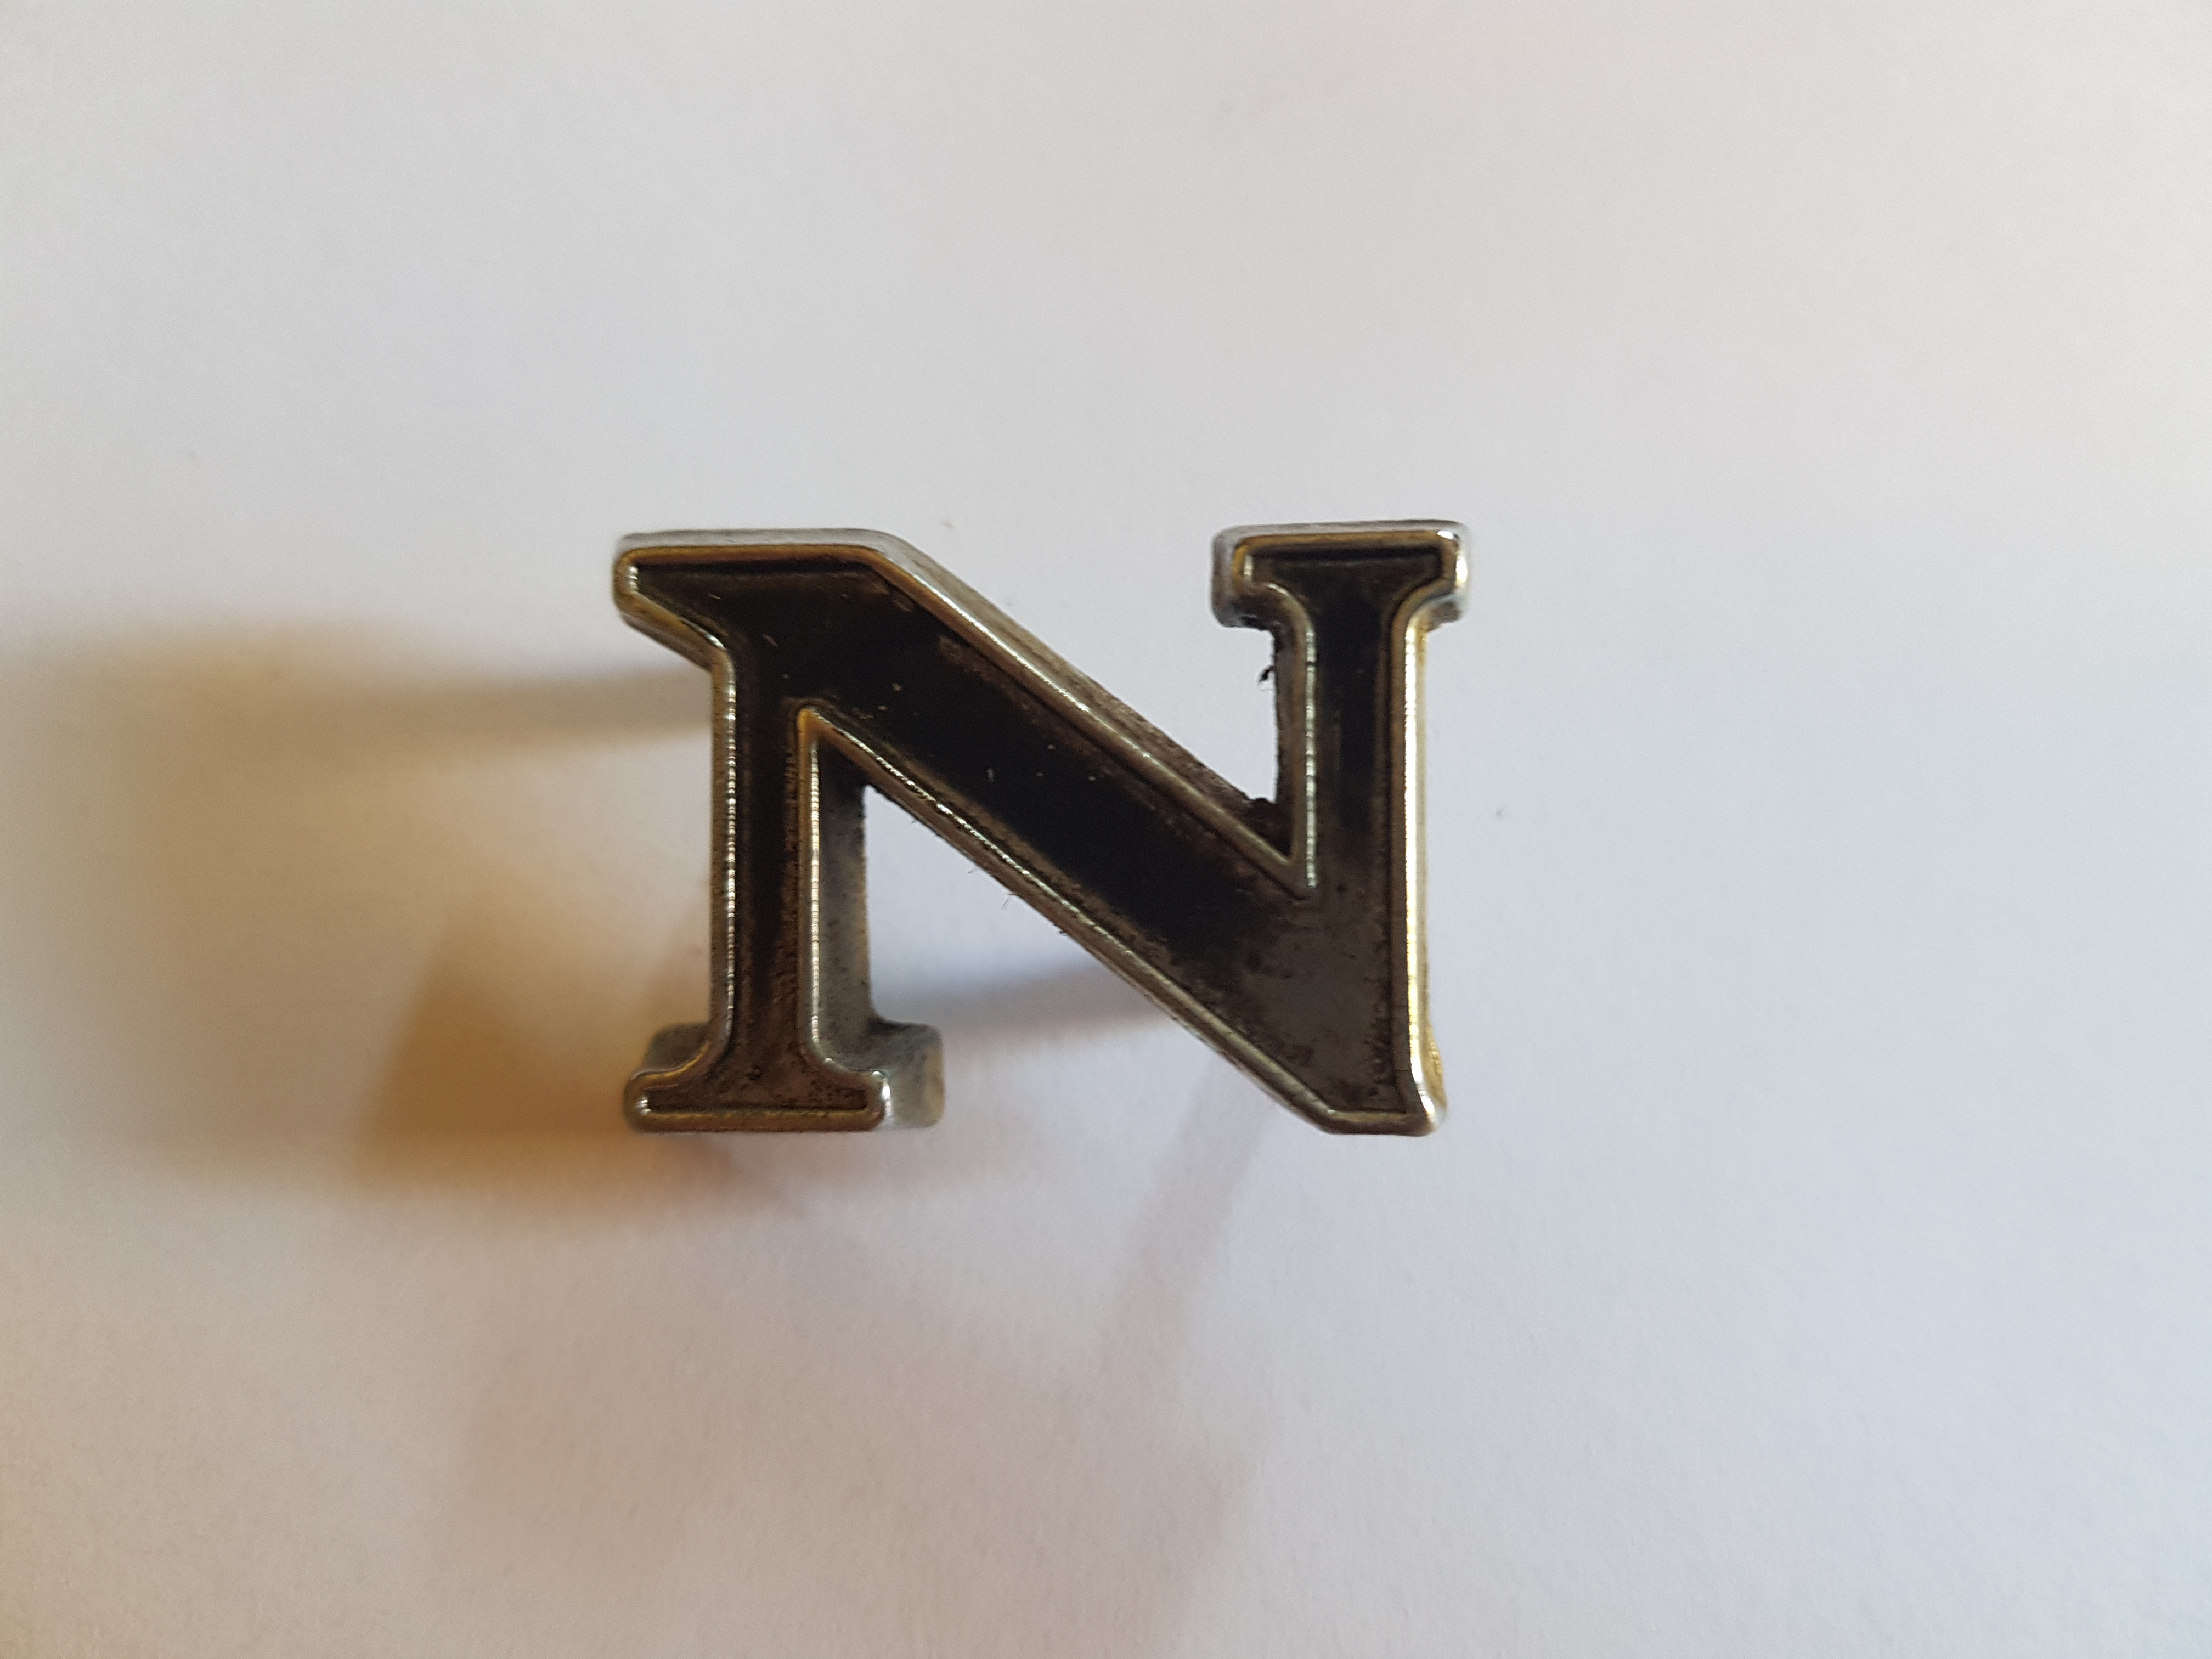 'N' Boot Letter Badge, Salvaged